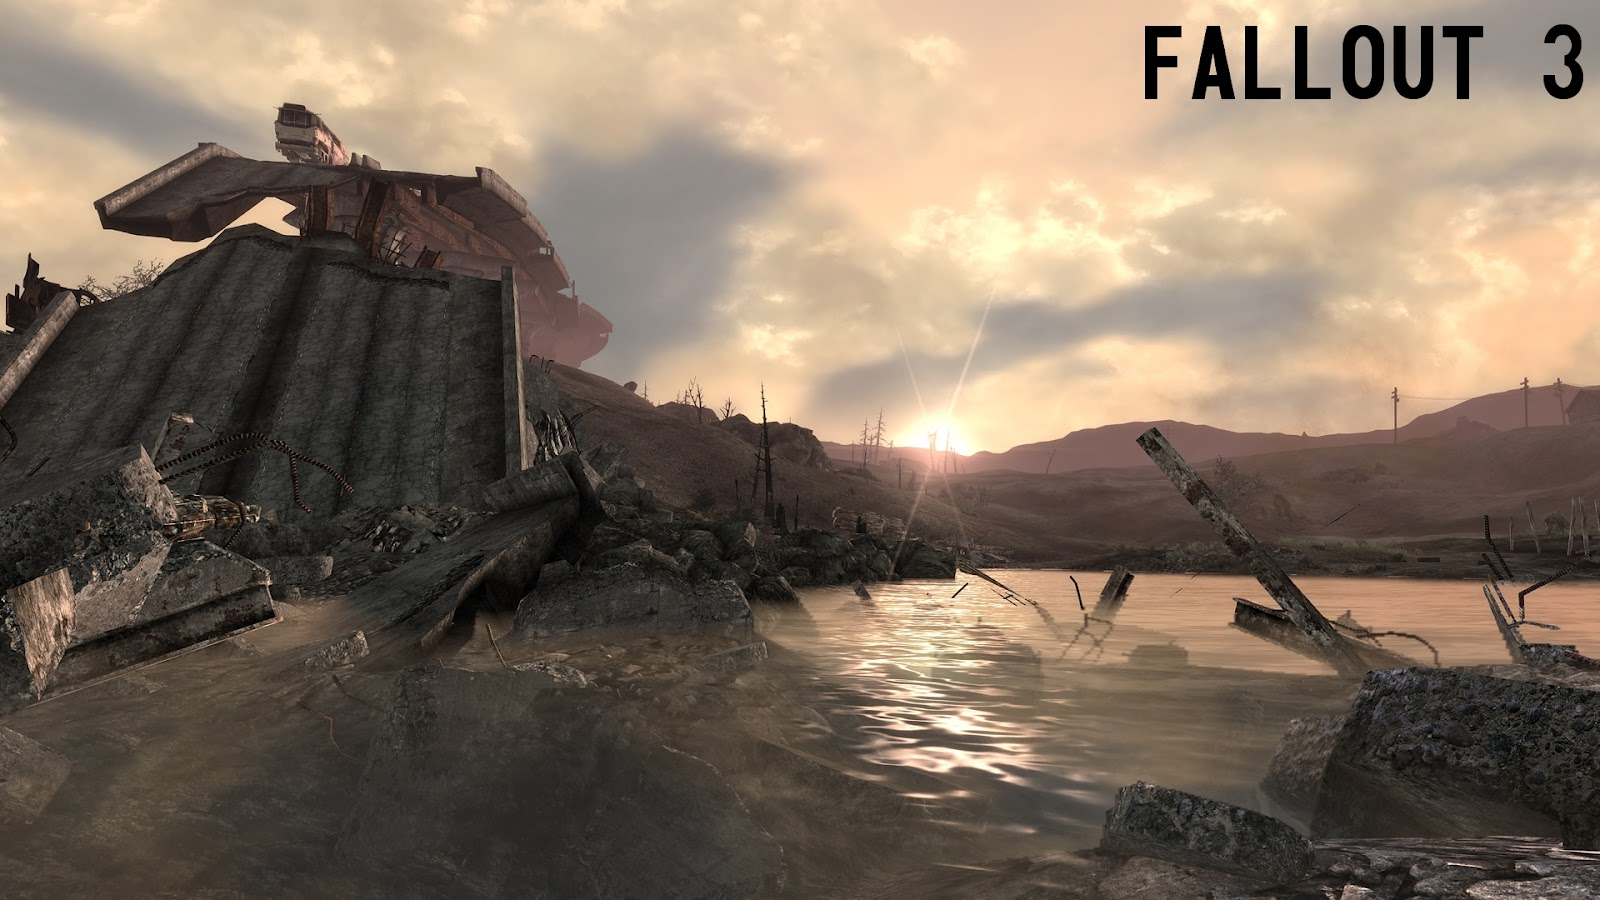 fallout new vegas hd wallpaper 1080p